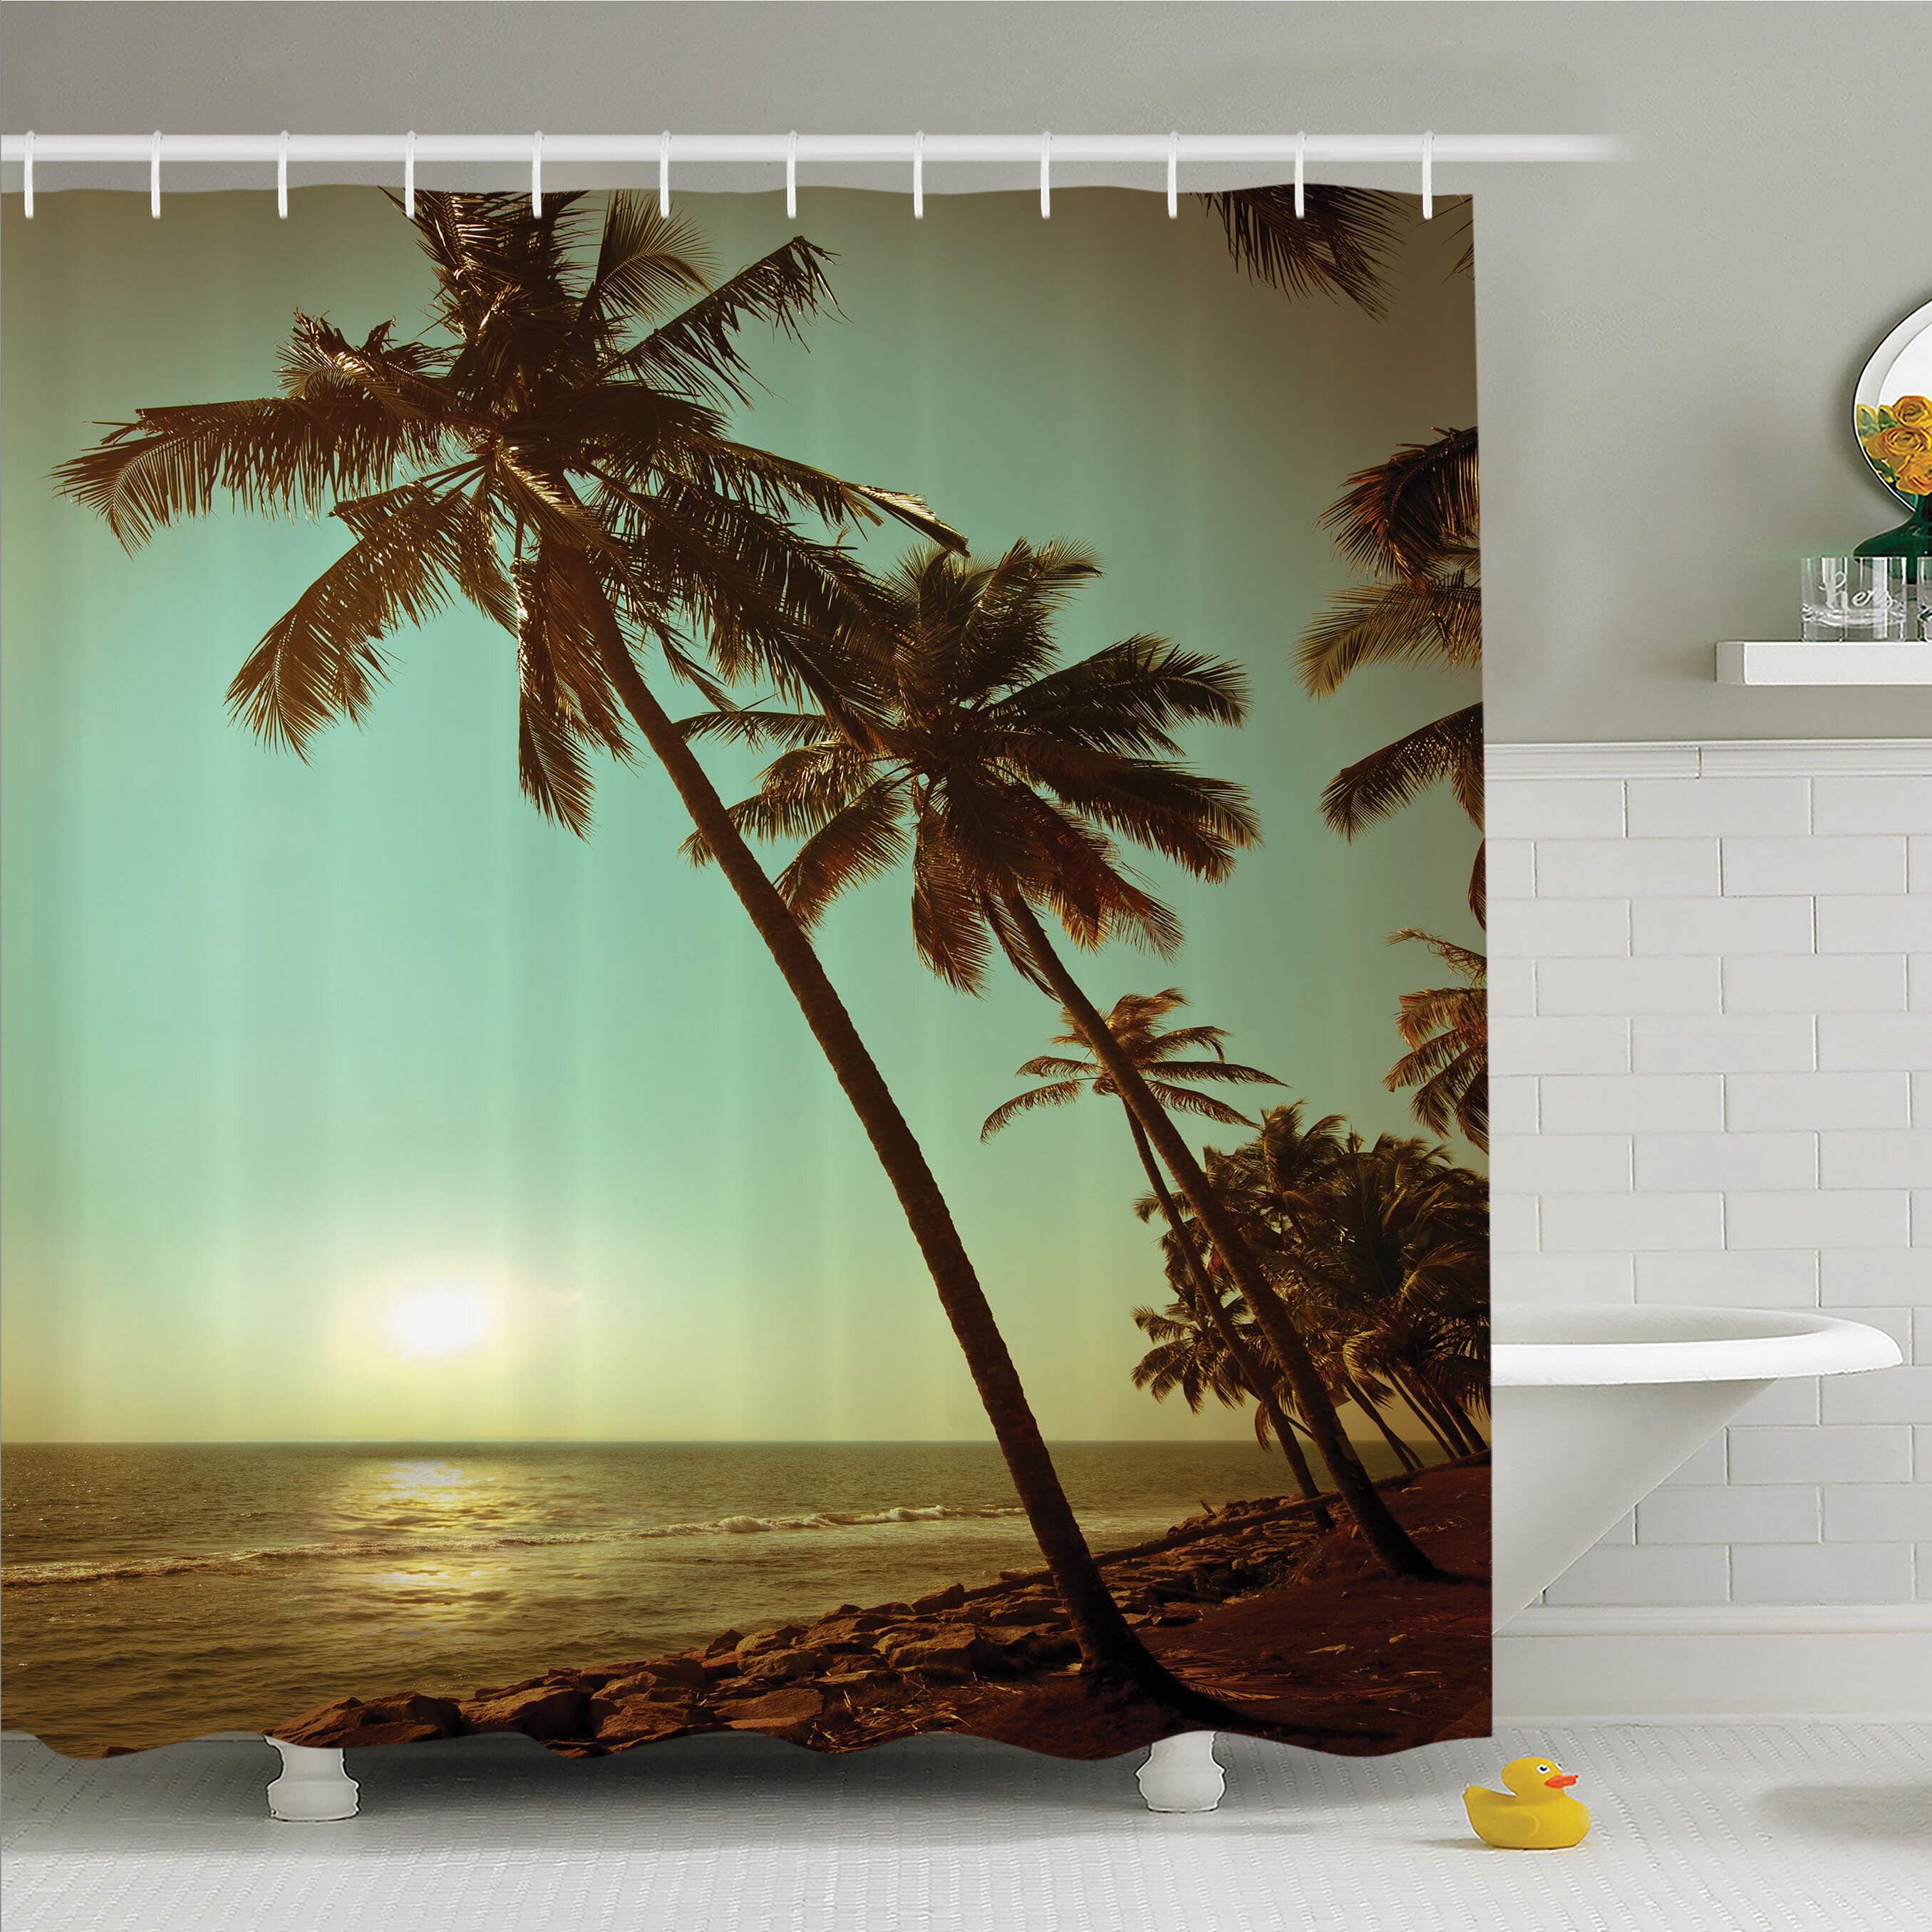 Summer Nautical Stone Palm Tree Polyester Waterproof Fabric Shower Curtain Liner